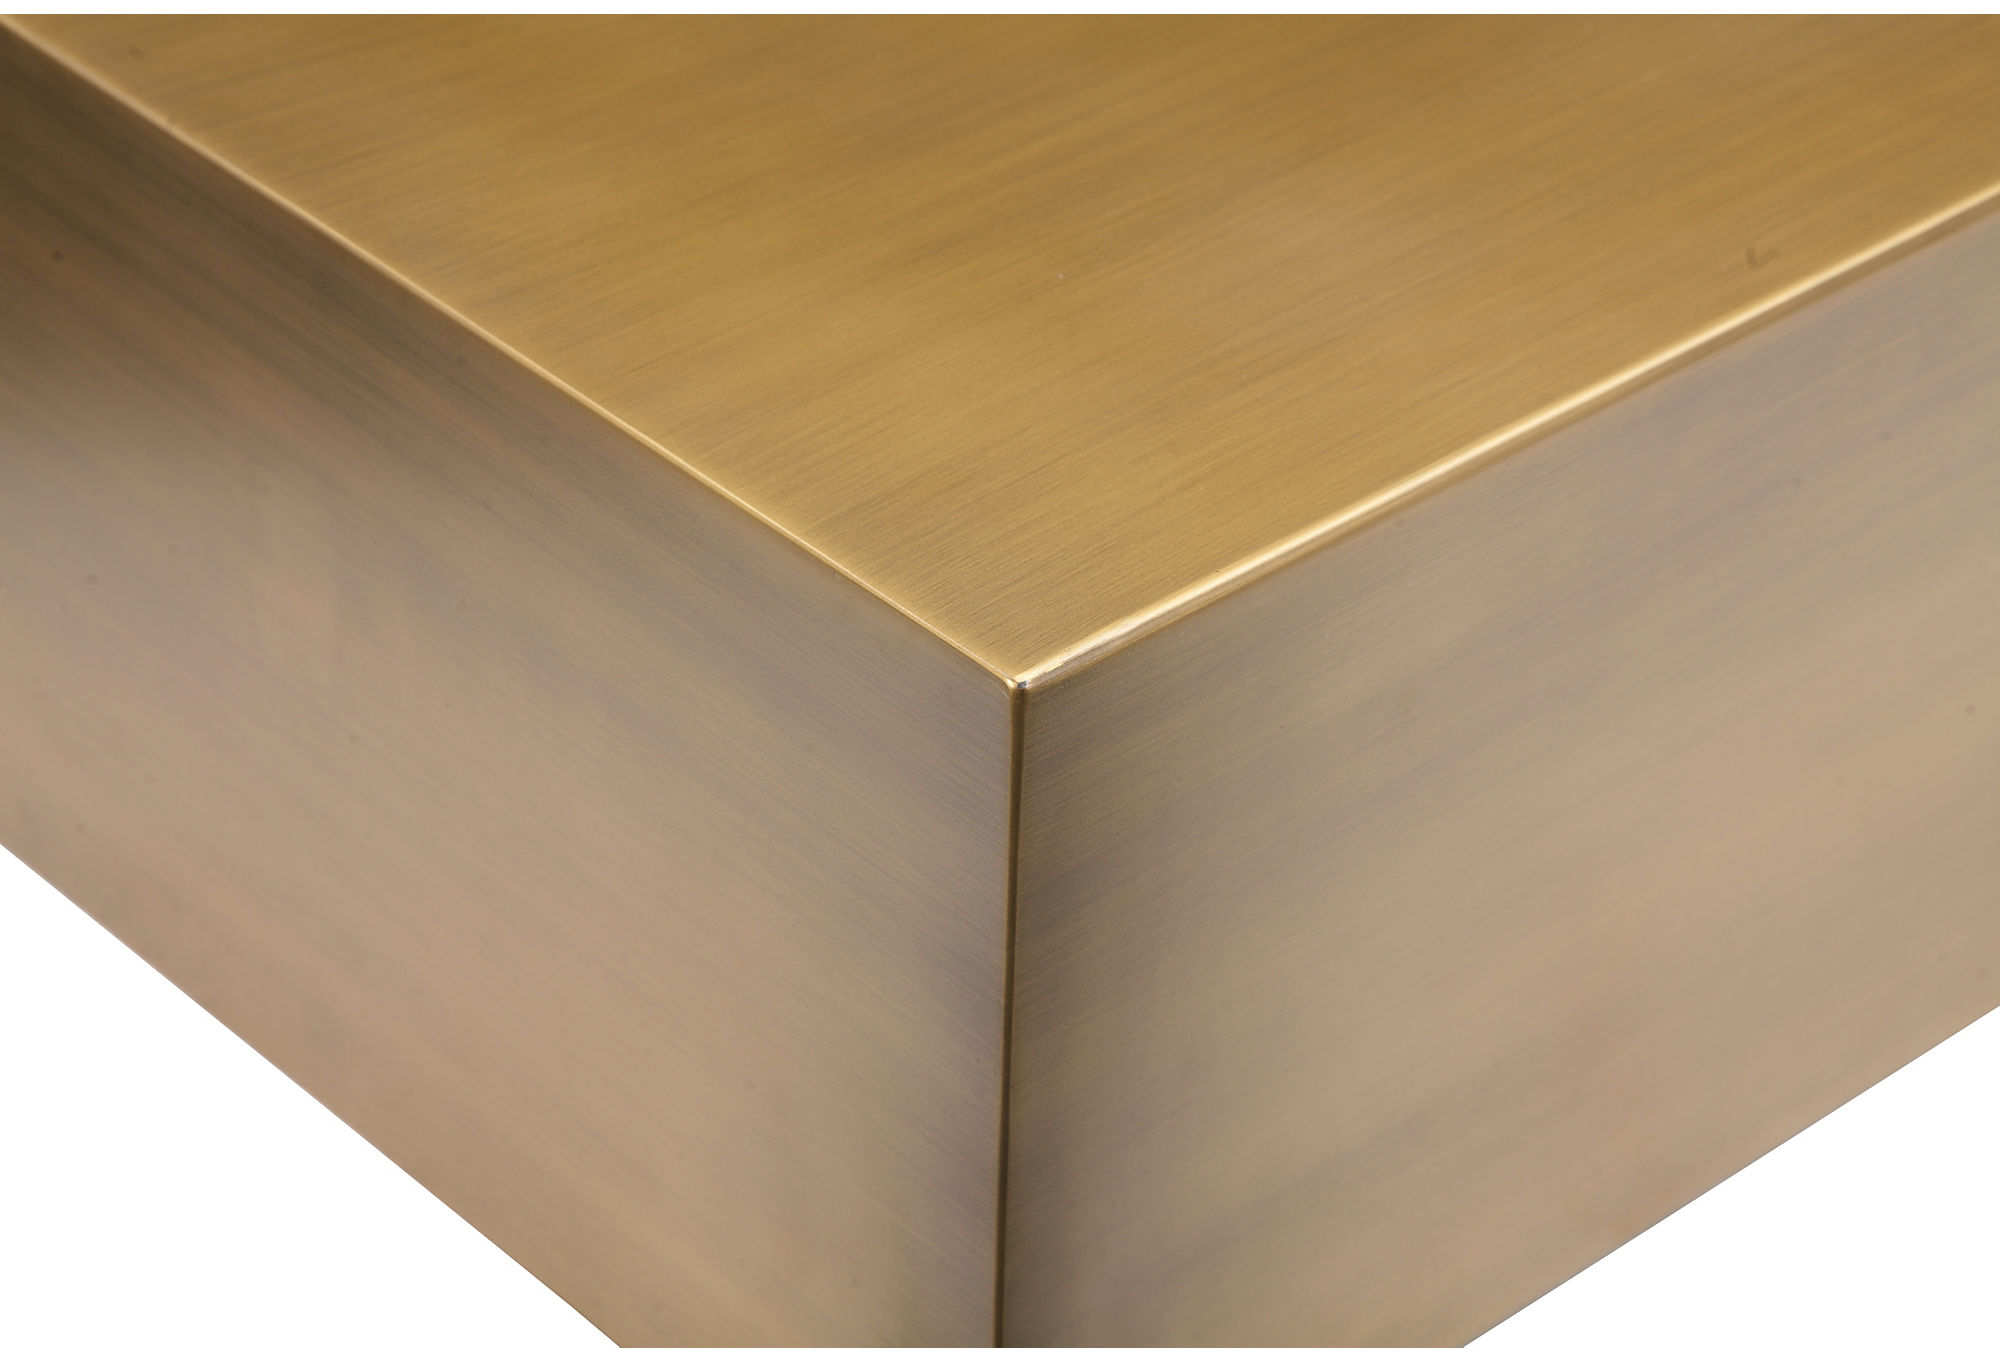 cube-coffee-table-close-up.jpg